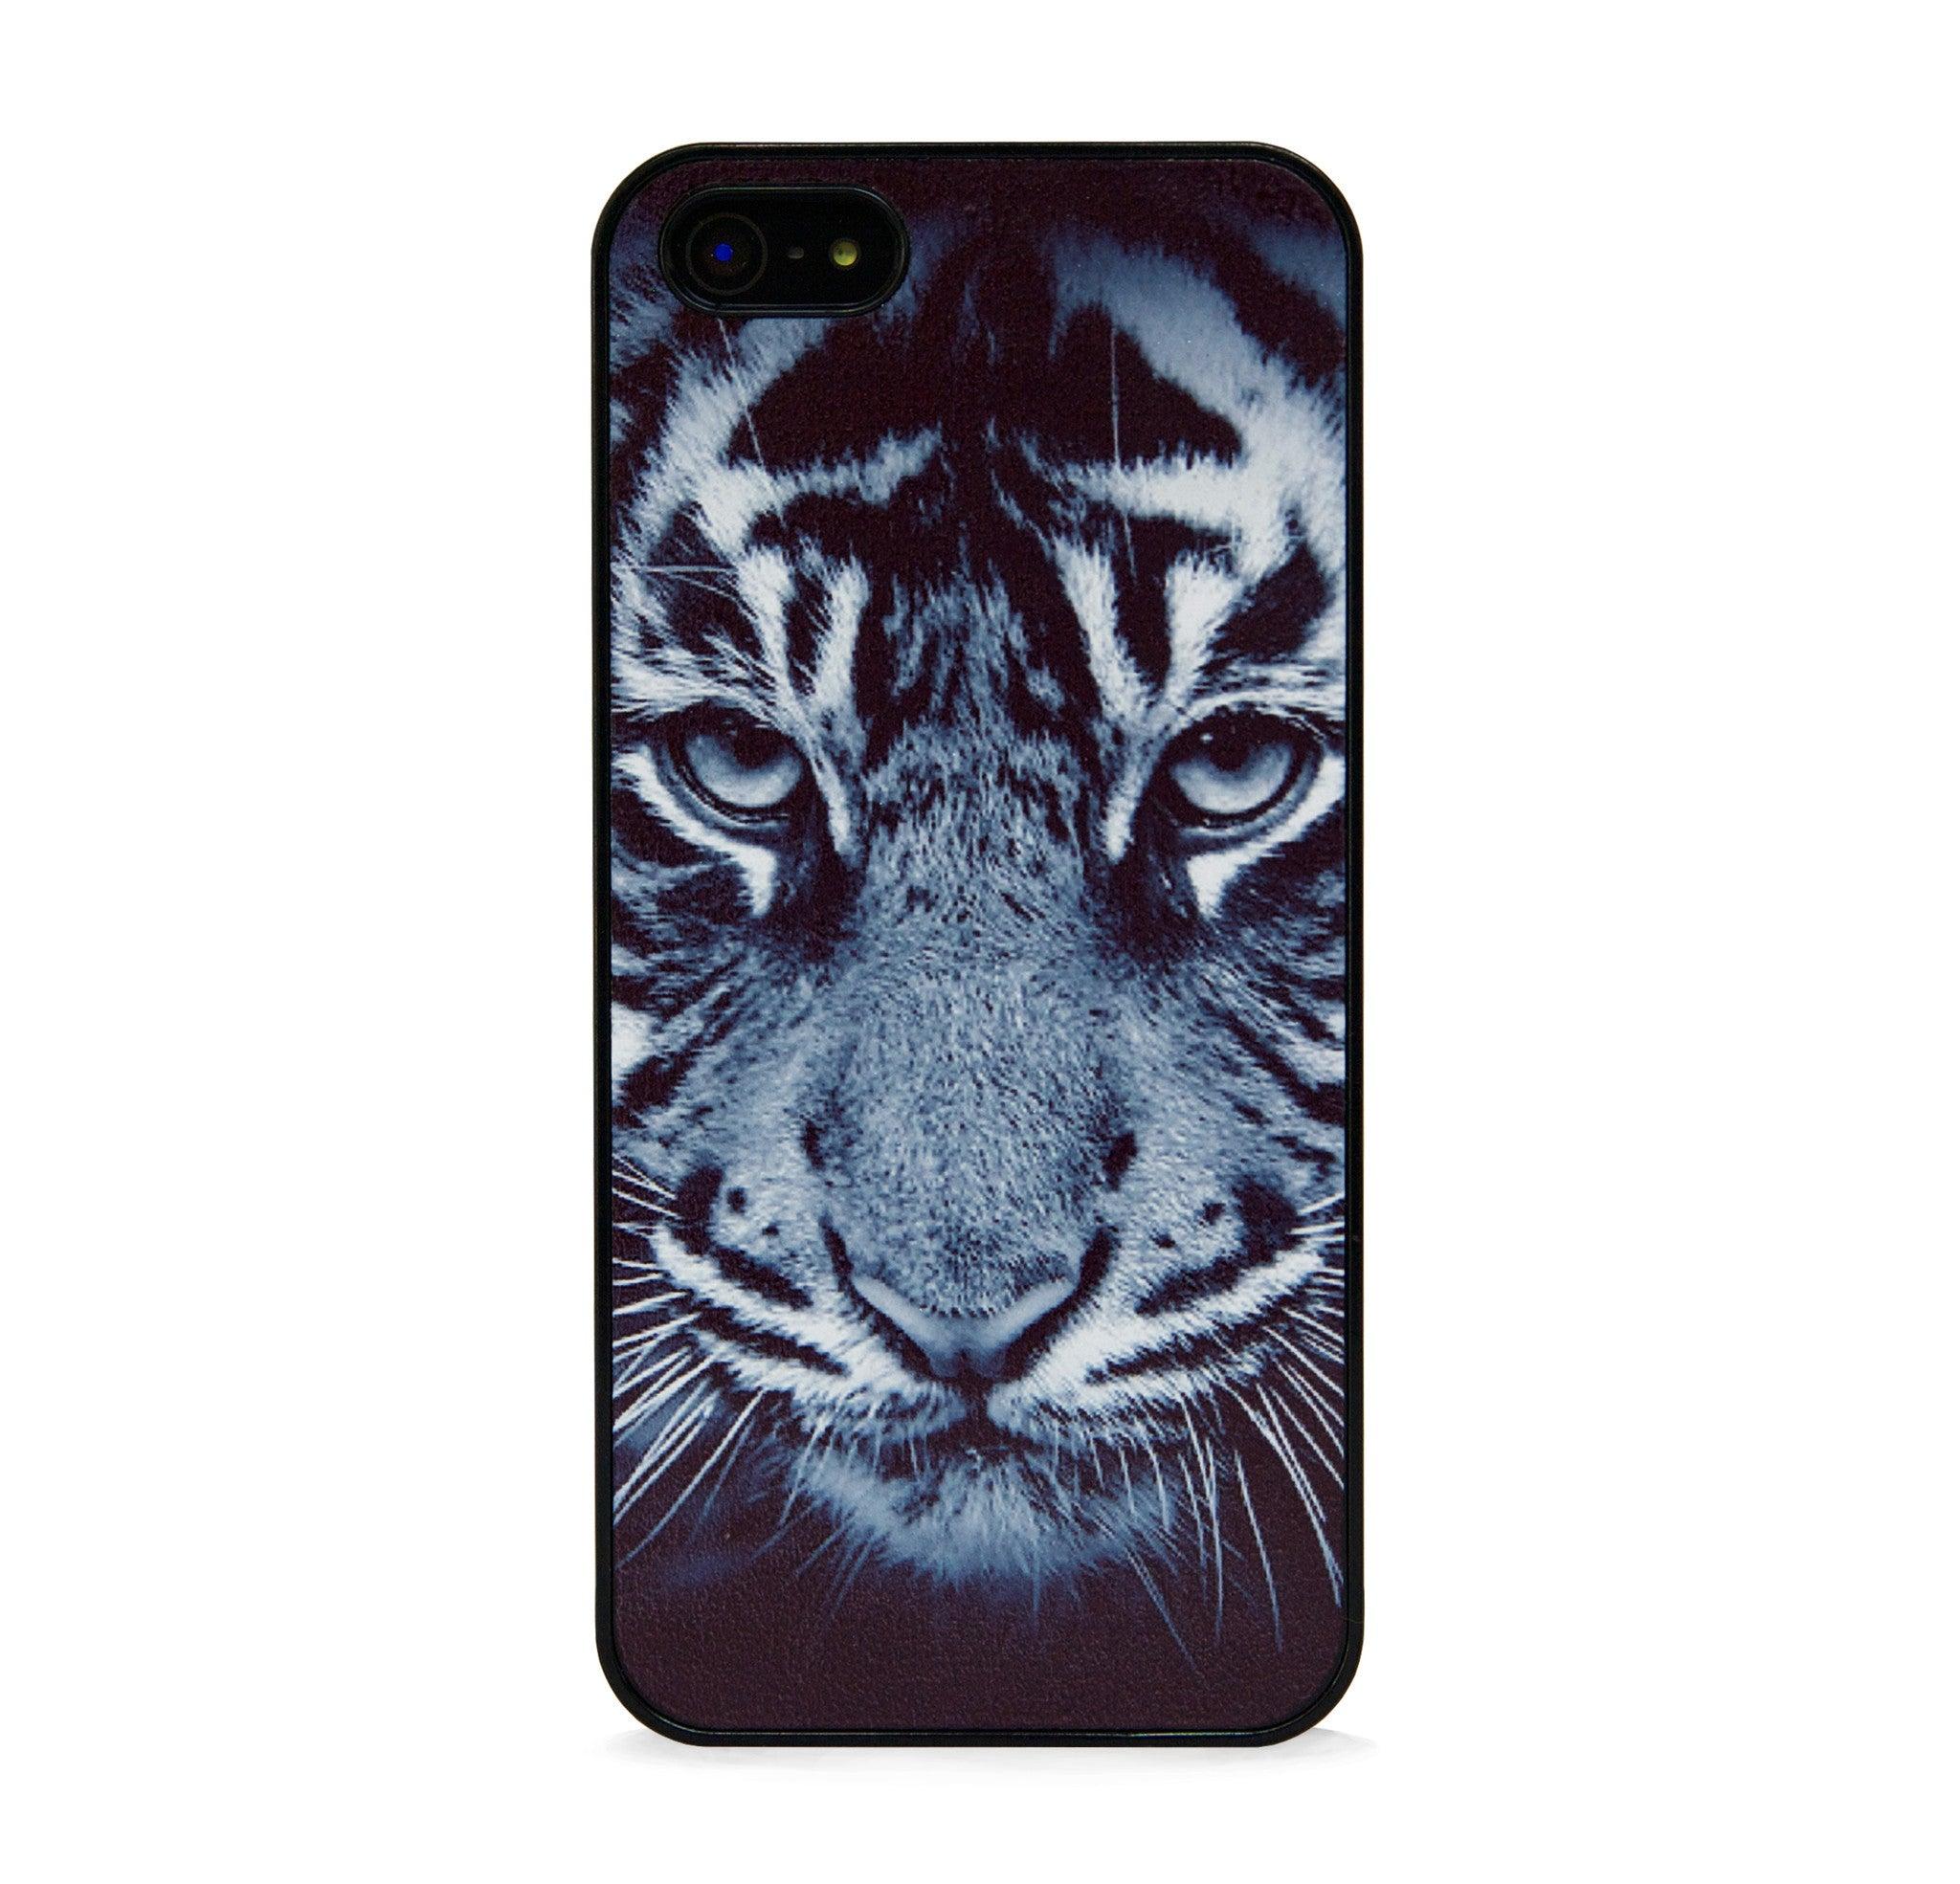 WILD TIGER IN BLACK FOR IPHONE 5/5S, IPHONE SE